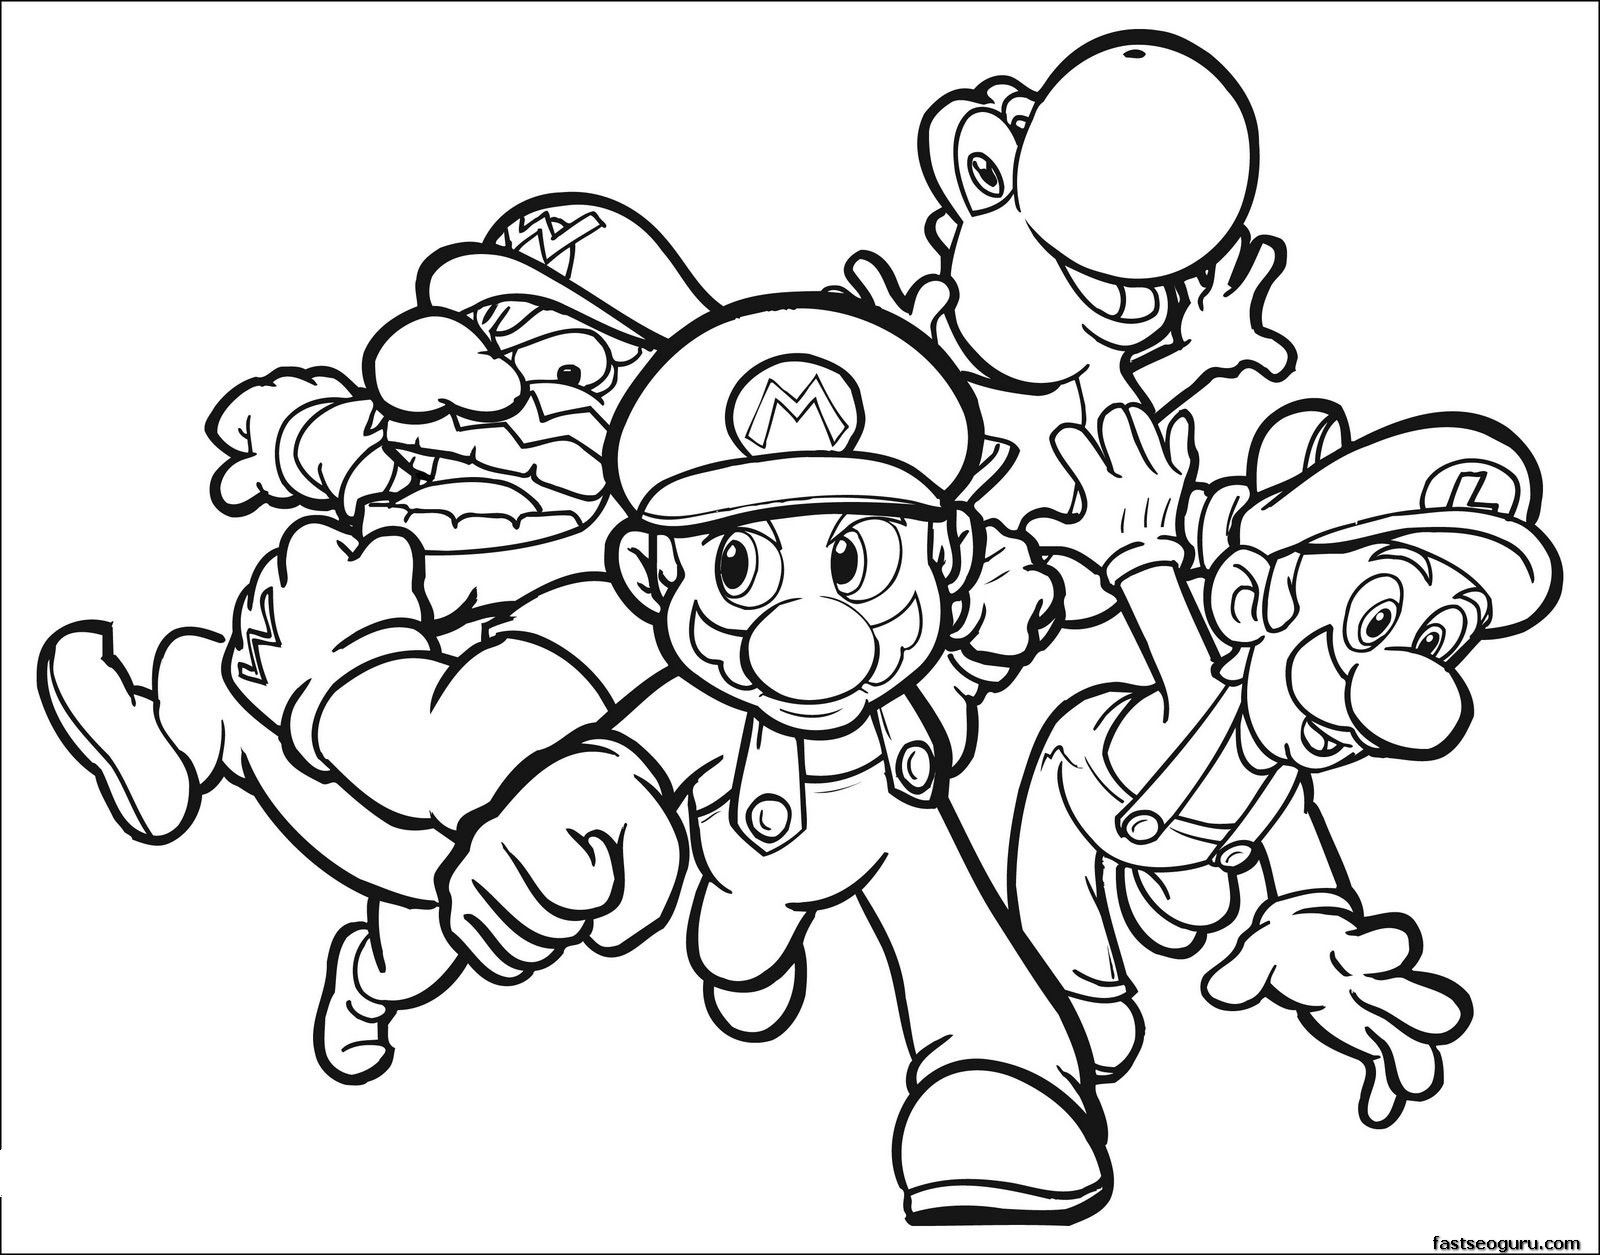 Mario Coloring Pages For Boys 01 Super Mario Coloring Pages Cartoon Coloring Pages Disney Coloring Pages